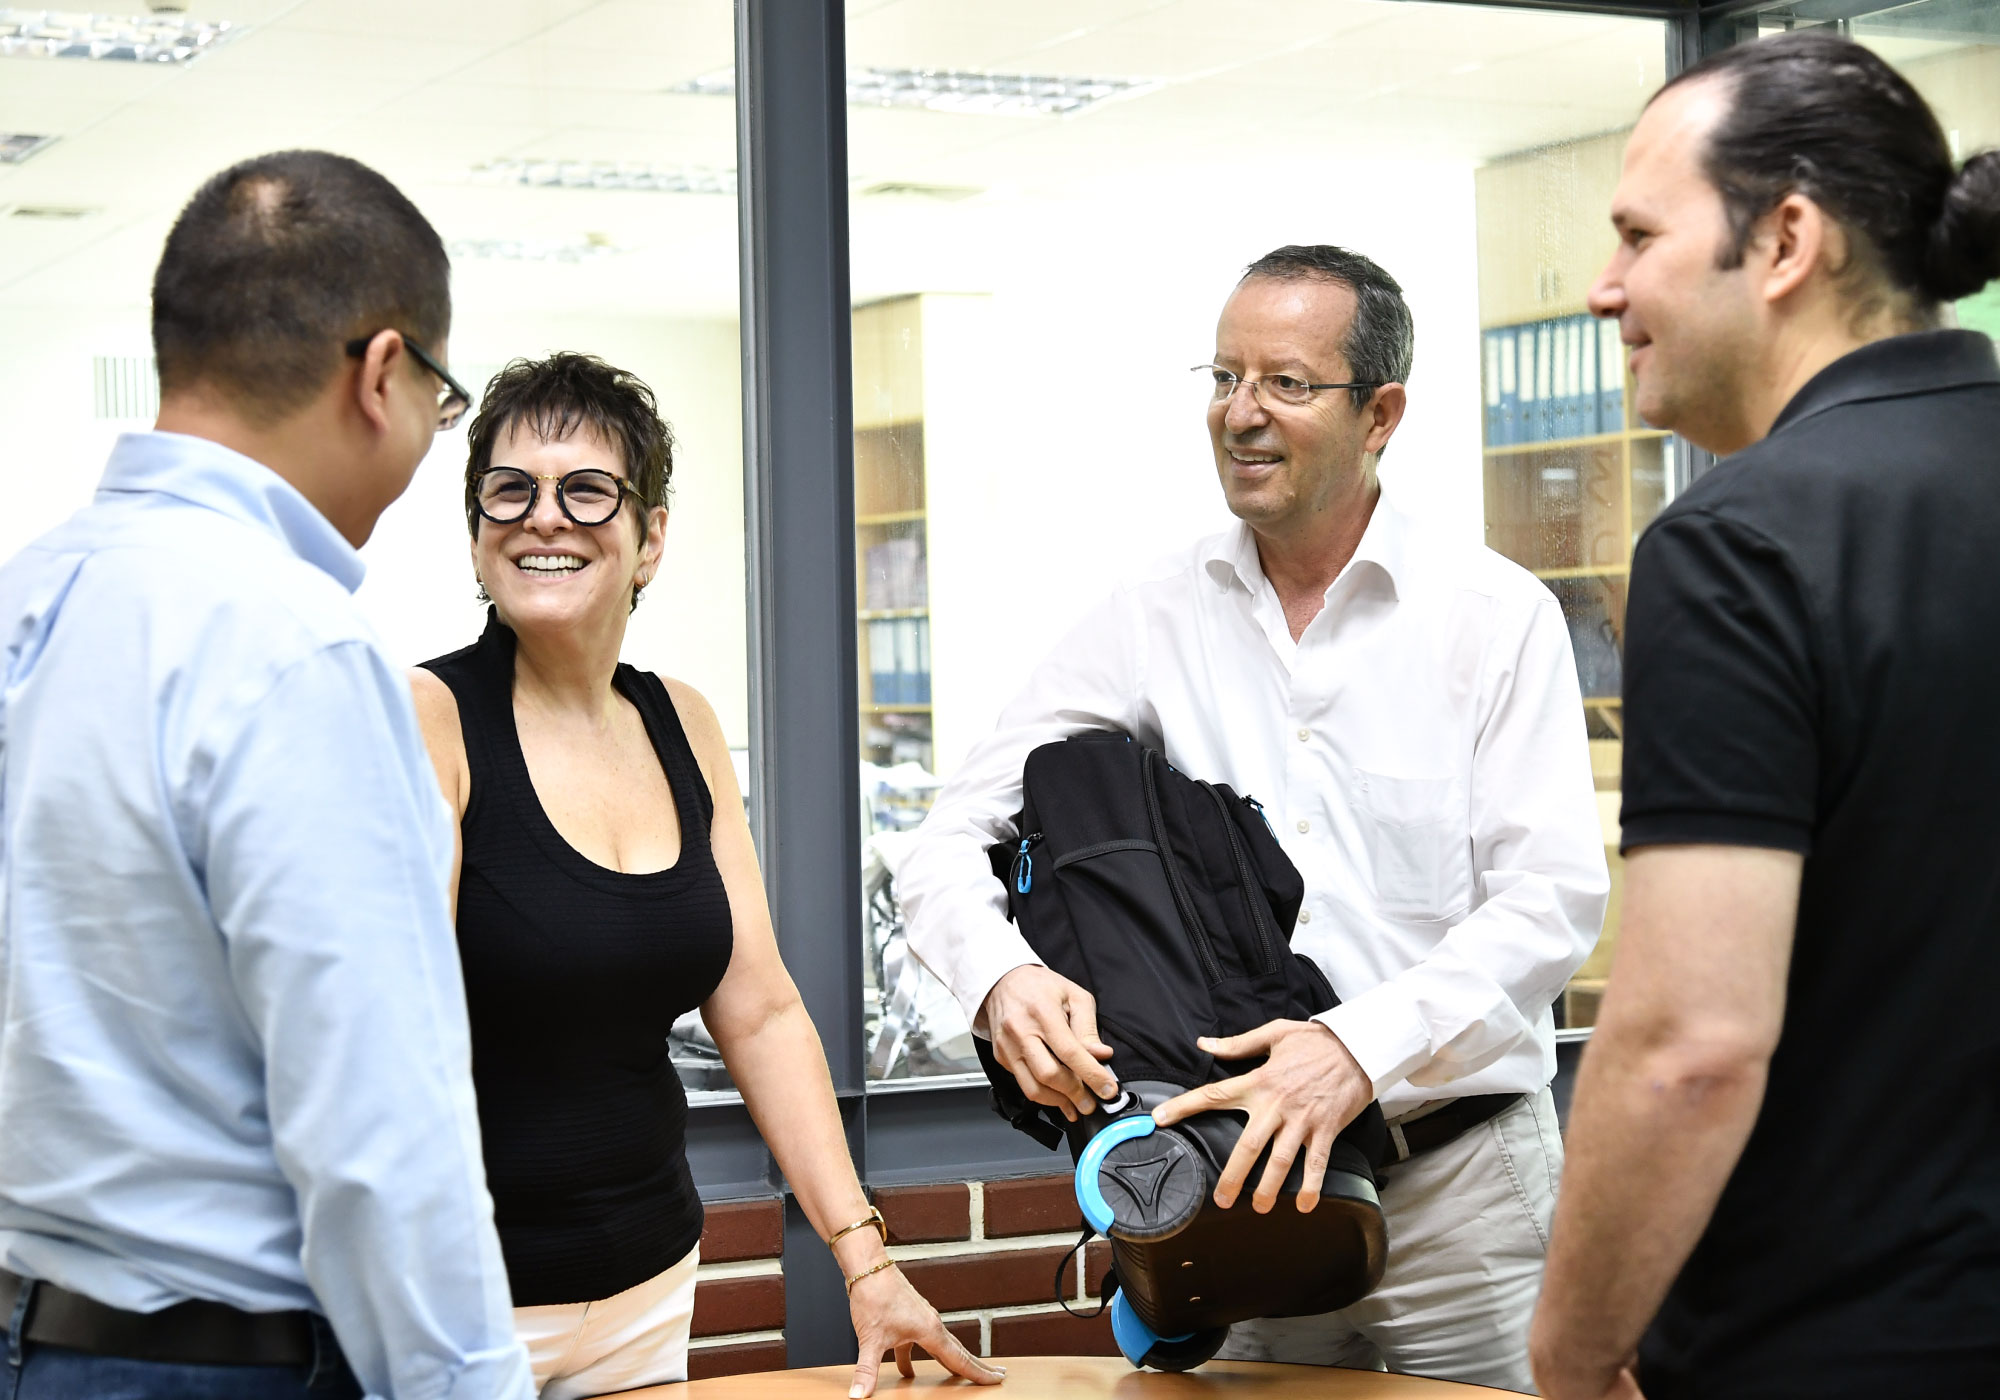 Managing director, designer, engineer and development manager discussing a technical school bag with wheels in Starry offices